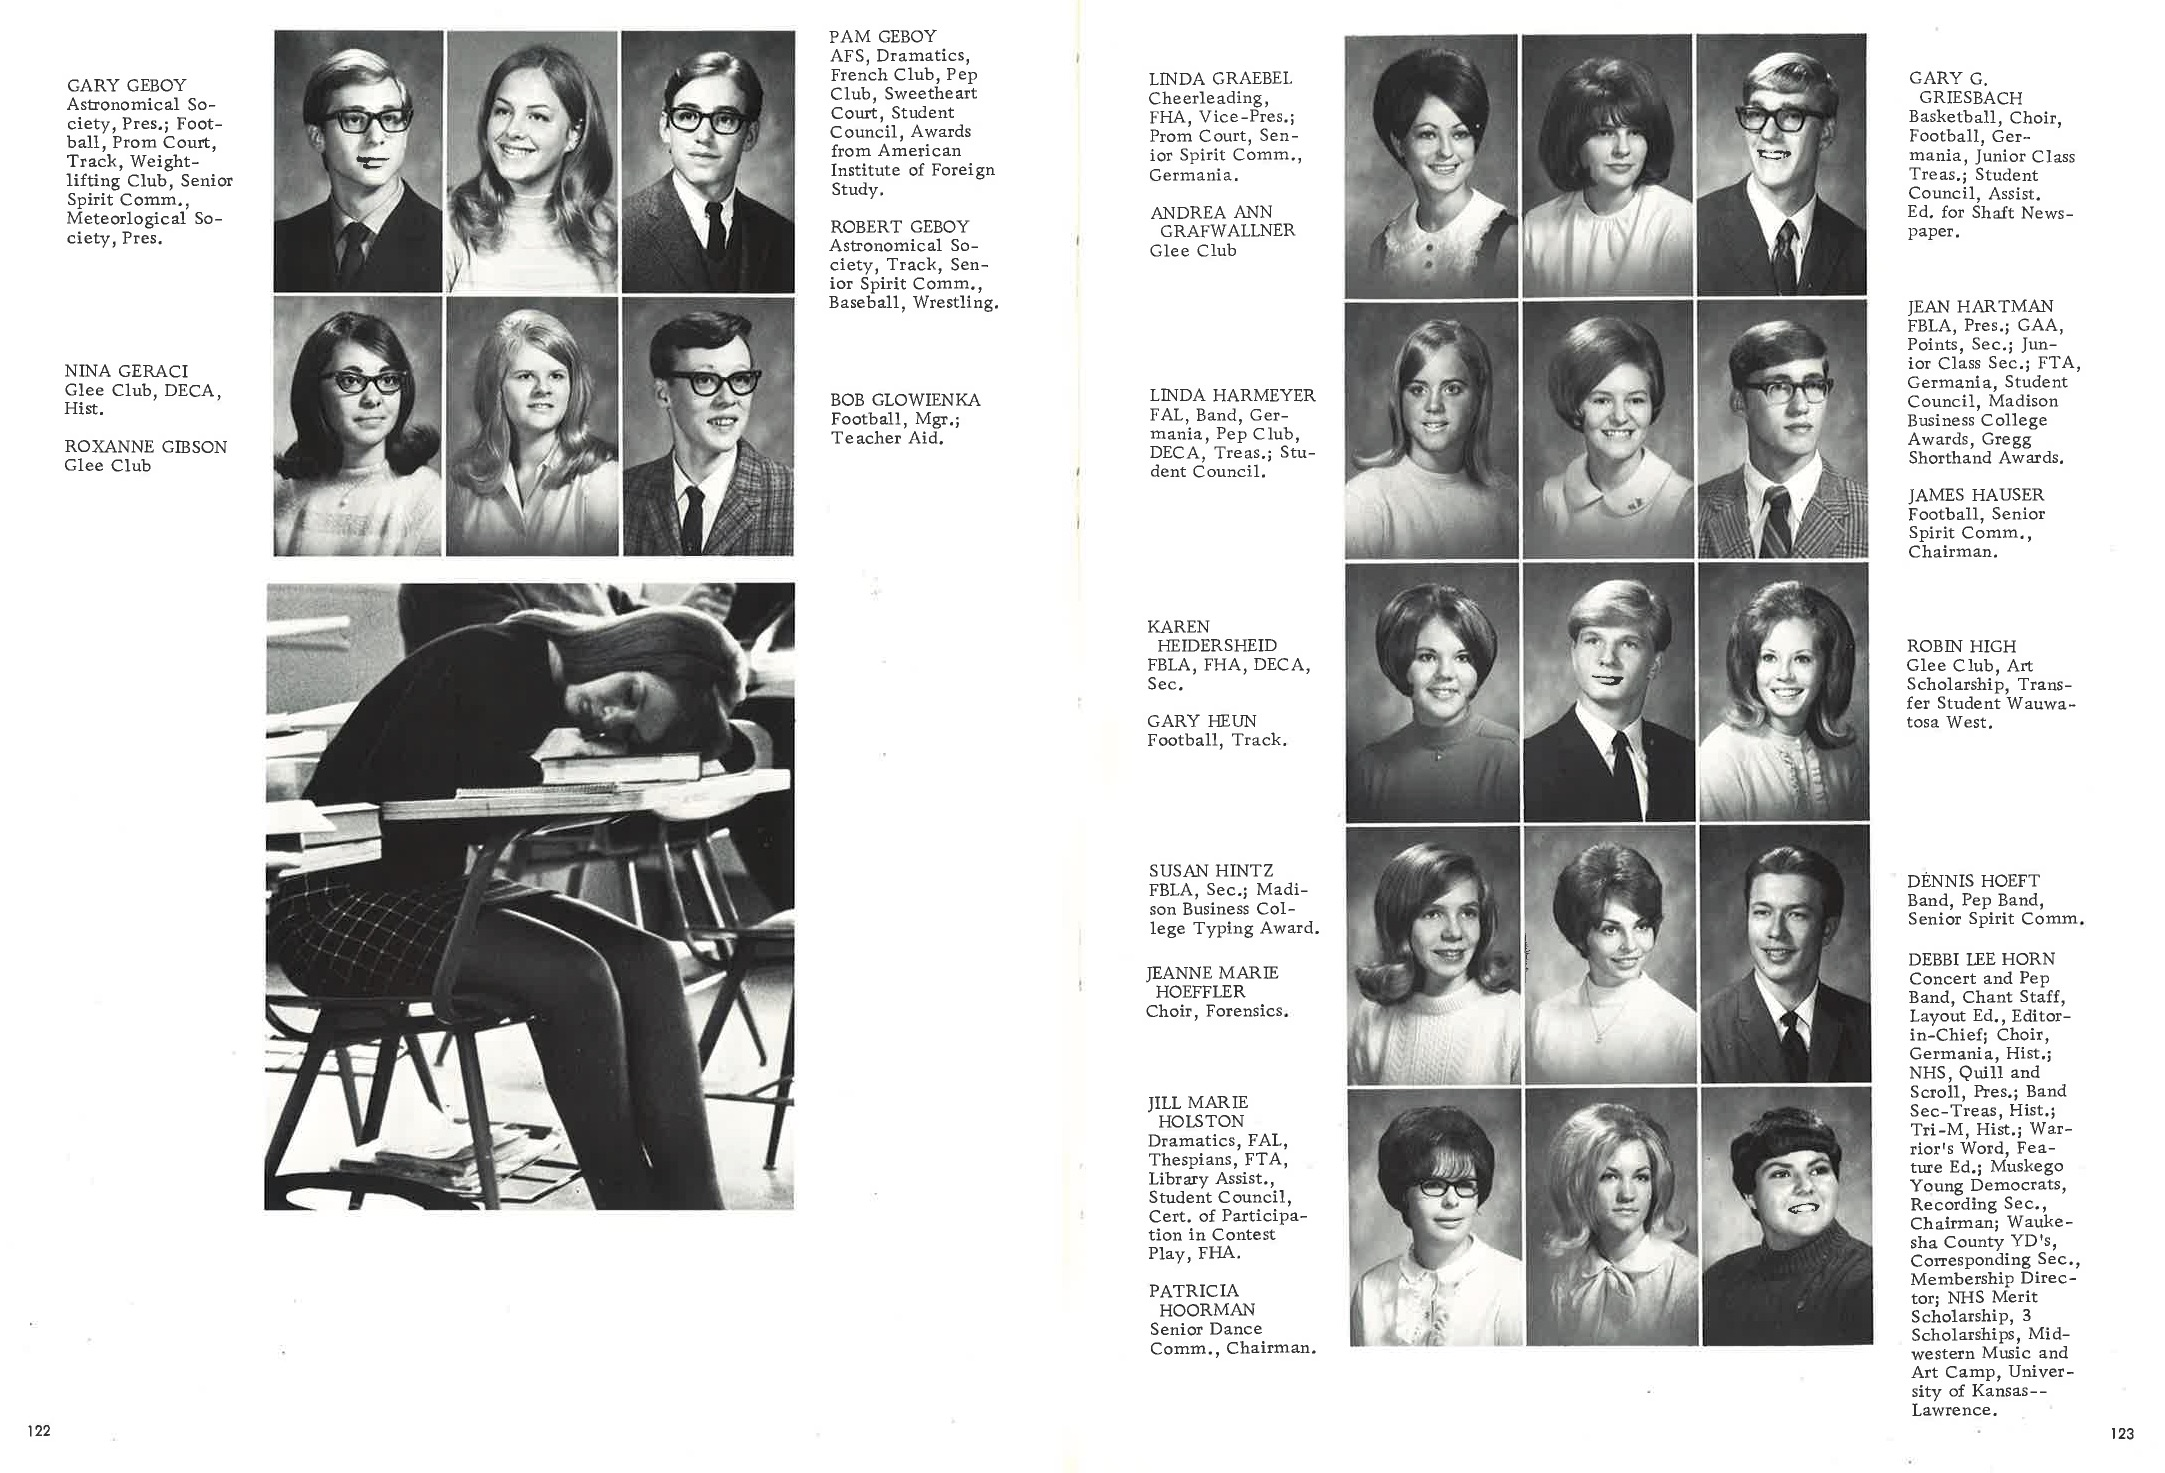 1970_Yearbook_122-123.jpg